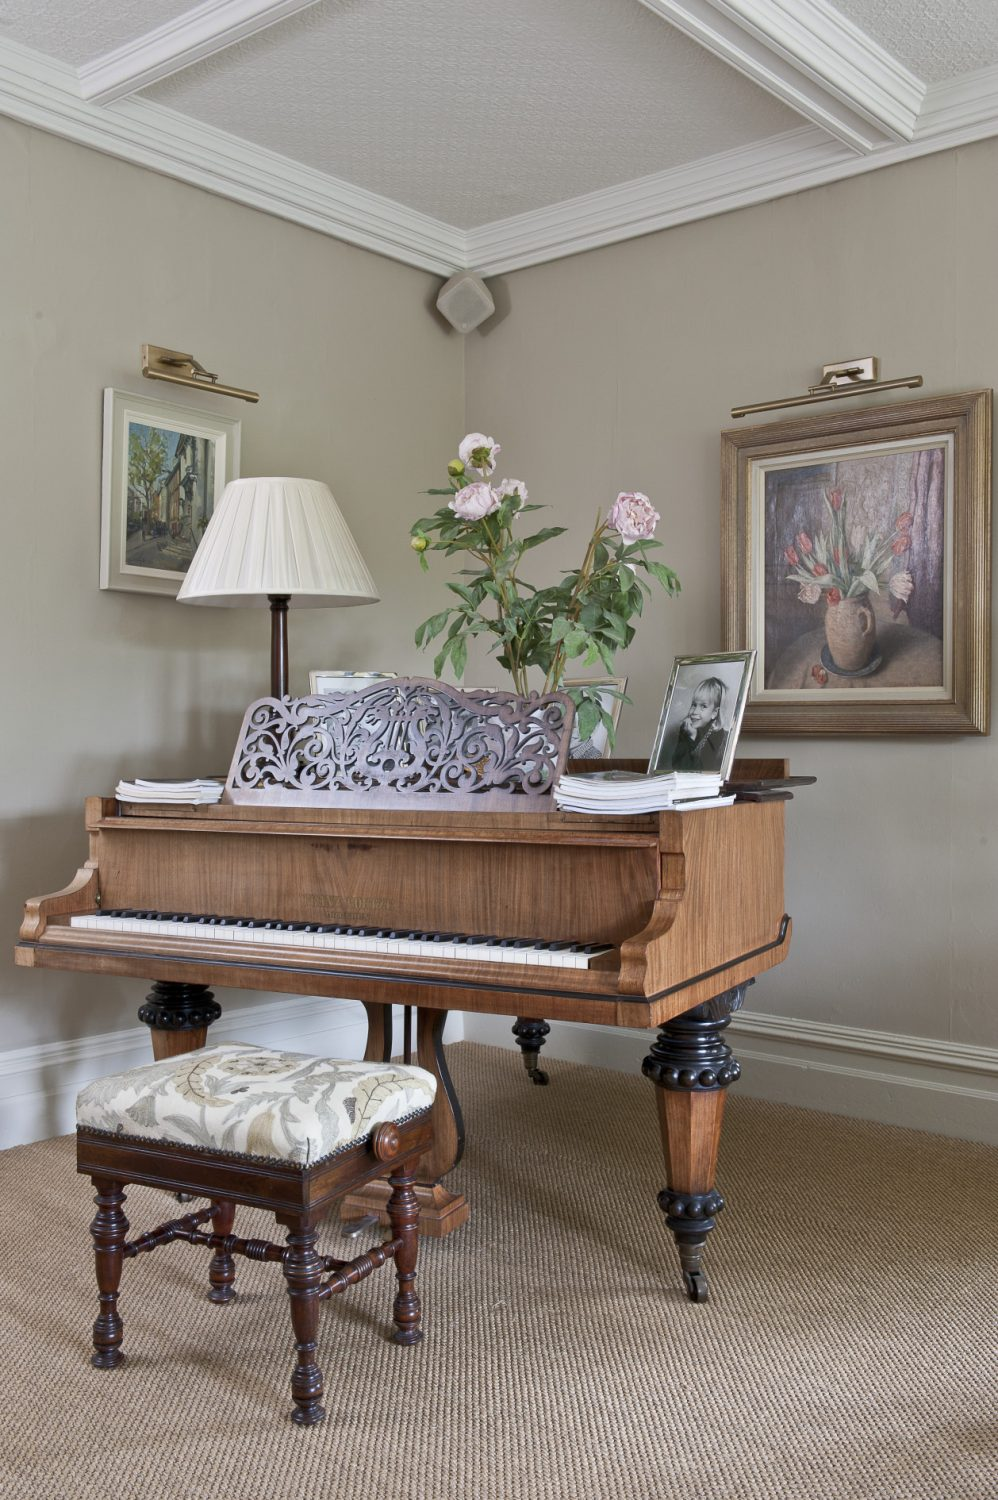 To the left of the piano hangs a painting by Karl Terry, an artist that Belinda particularly admires. As well as being an acclaimed local artist, Karl is also known as a roofing expert with a specialist knowledge of Kent pegs